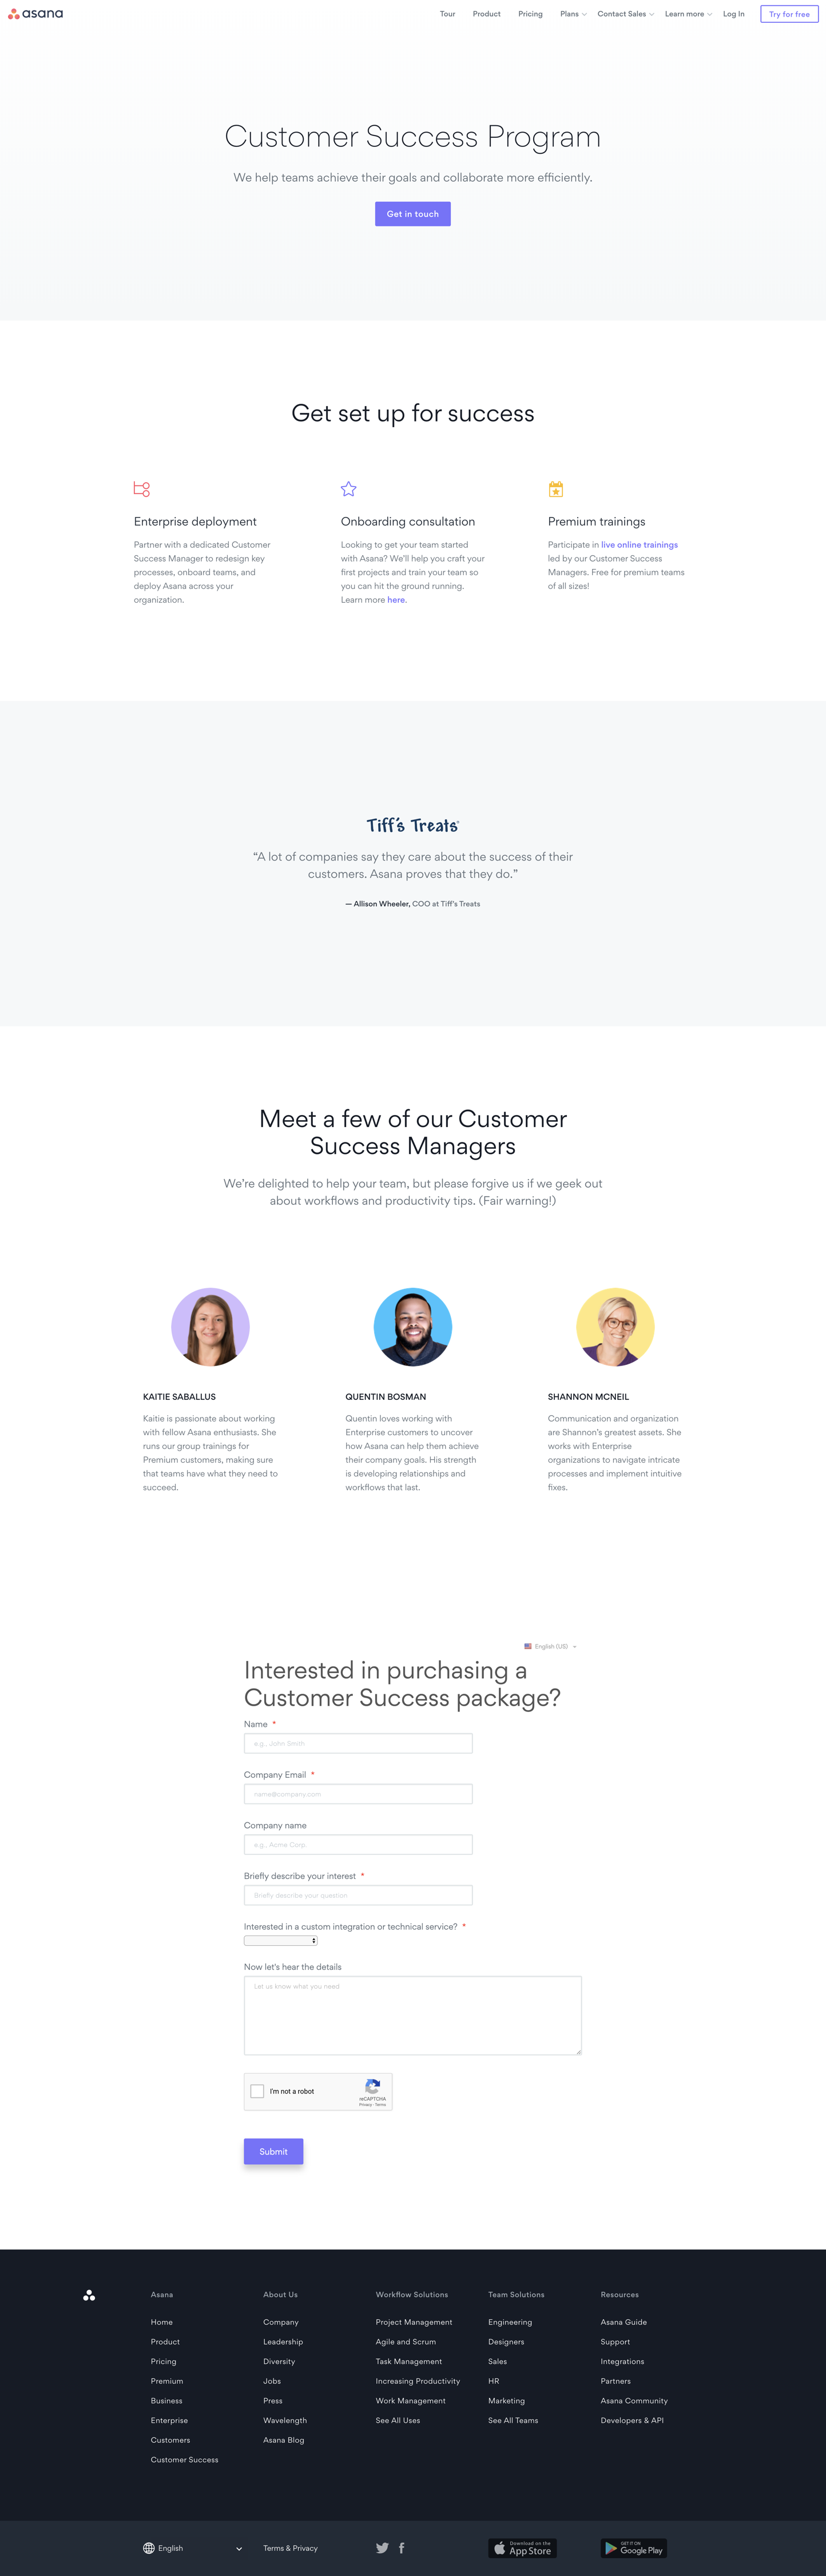 Screenshot of the Customer Success page from the Asana website.